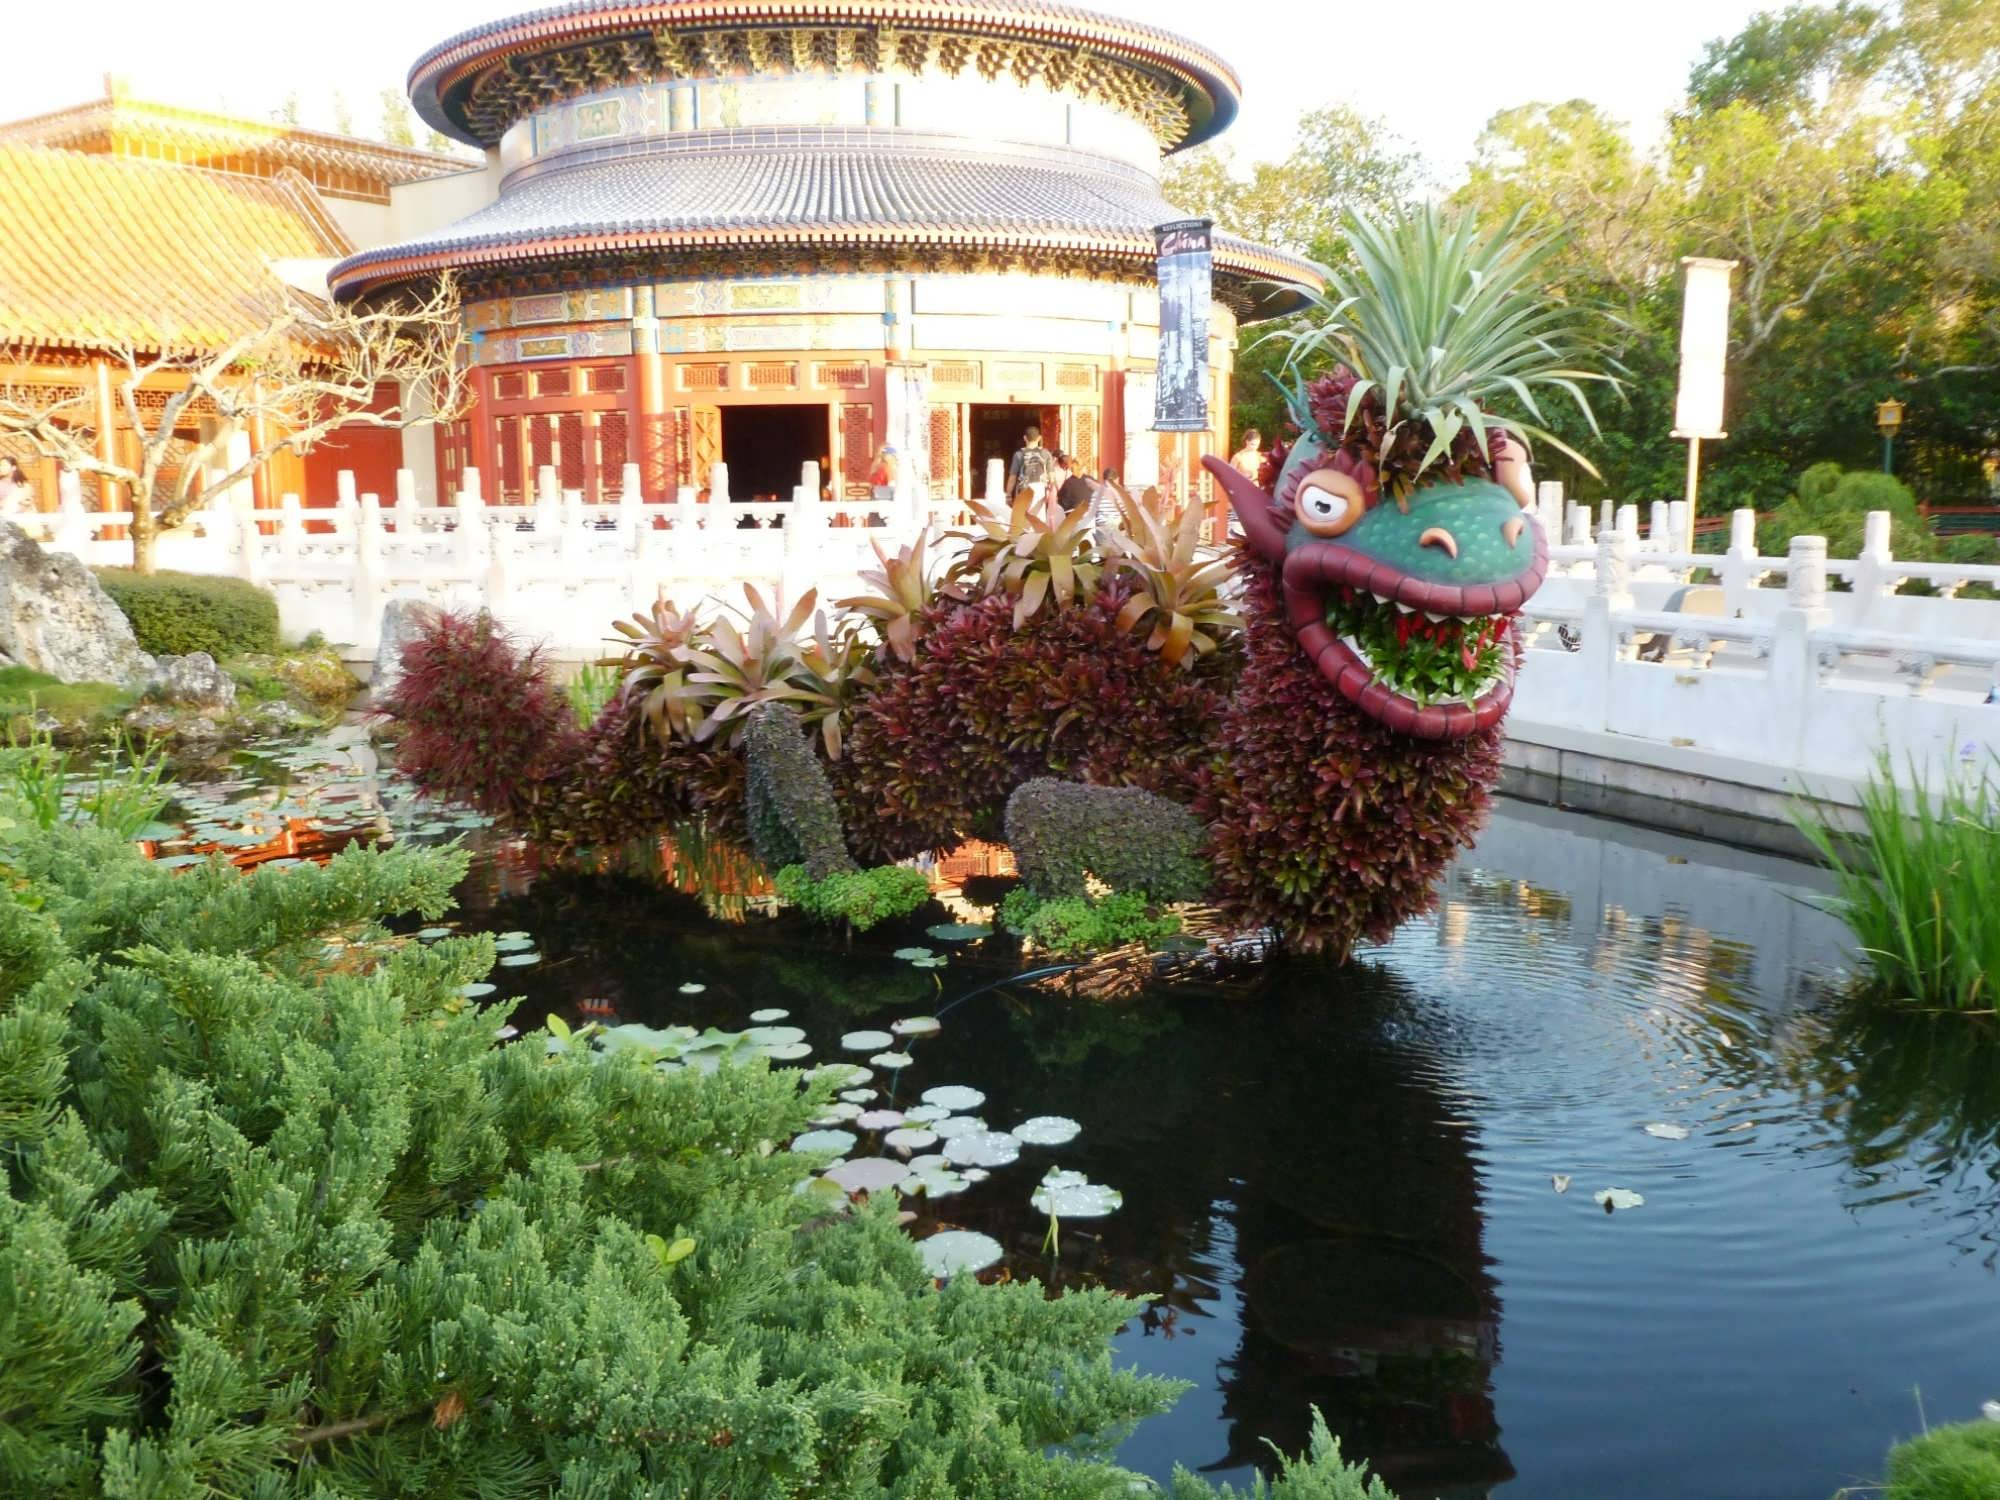 2013 Epcot International Flower Garden Festival Trip Report Includes Over 100 Images